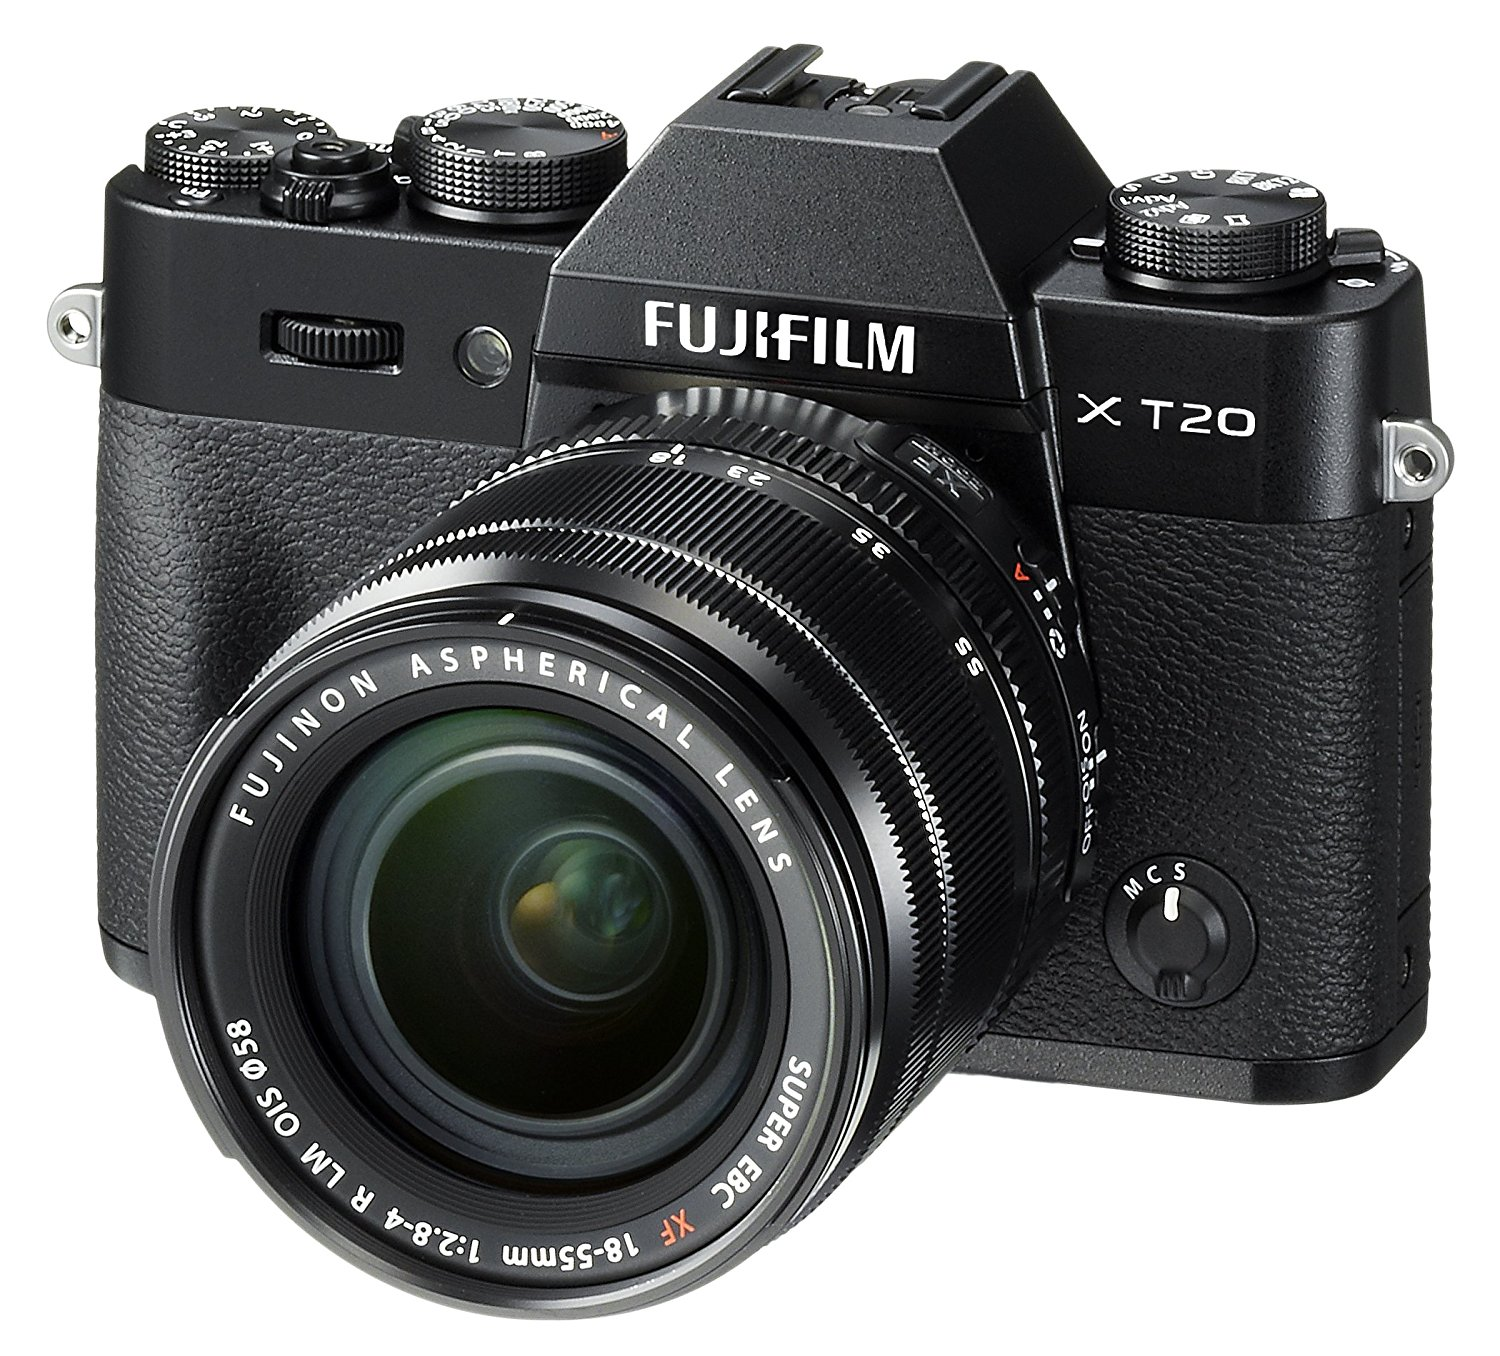 <span style='color:#dd3333;'>Hot Deal: $50 Off on Fujifilm X-T20 &#038; $500 Off on Fujifilm X-T1</span>